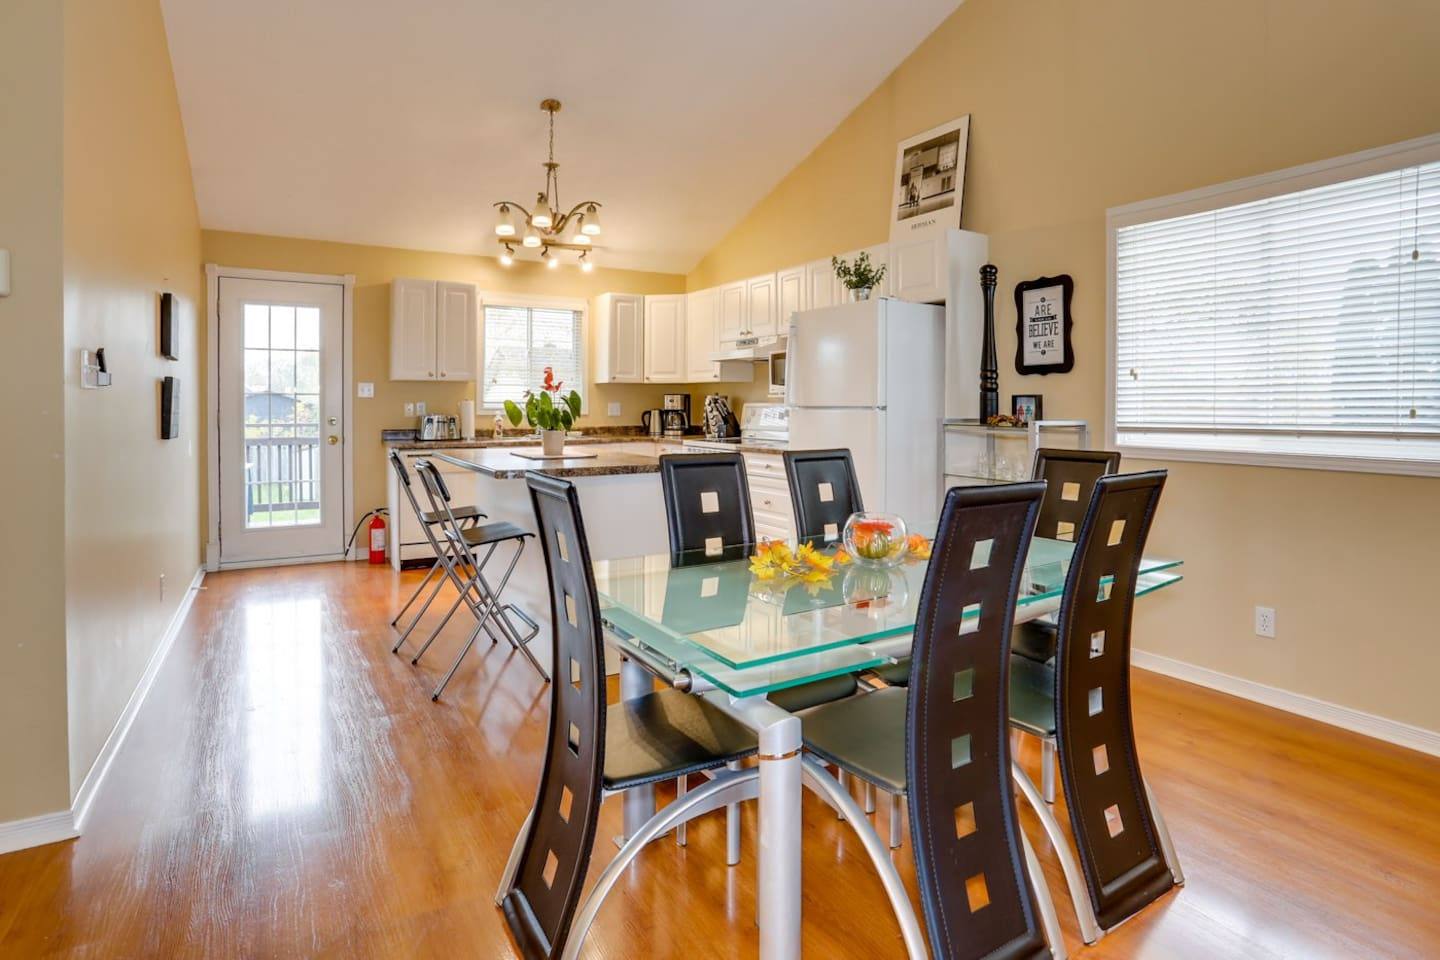 Open concept kitchen & dining area has lots of natural light